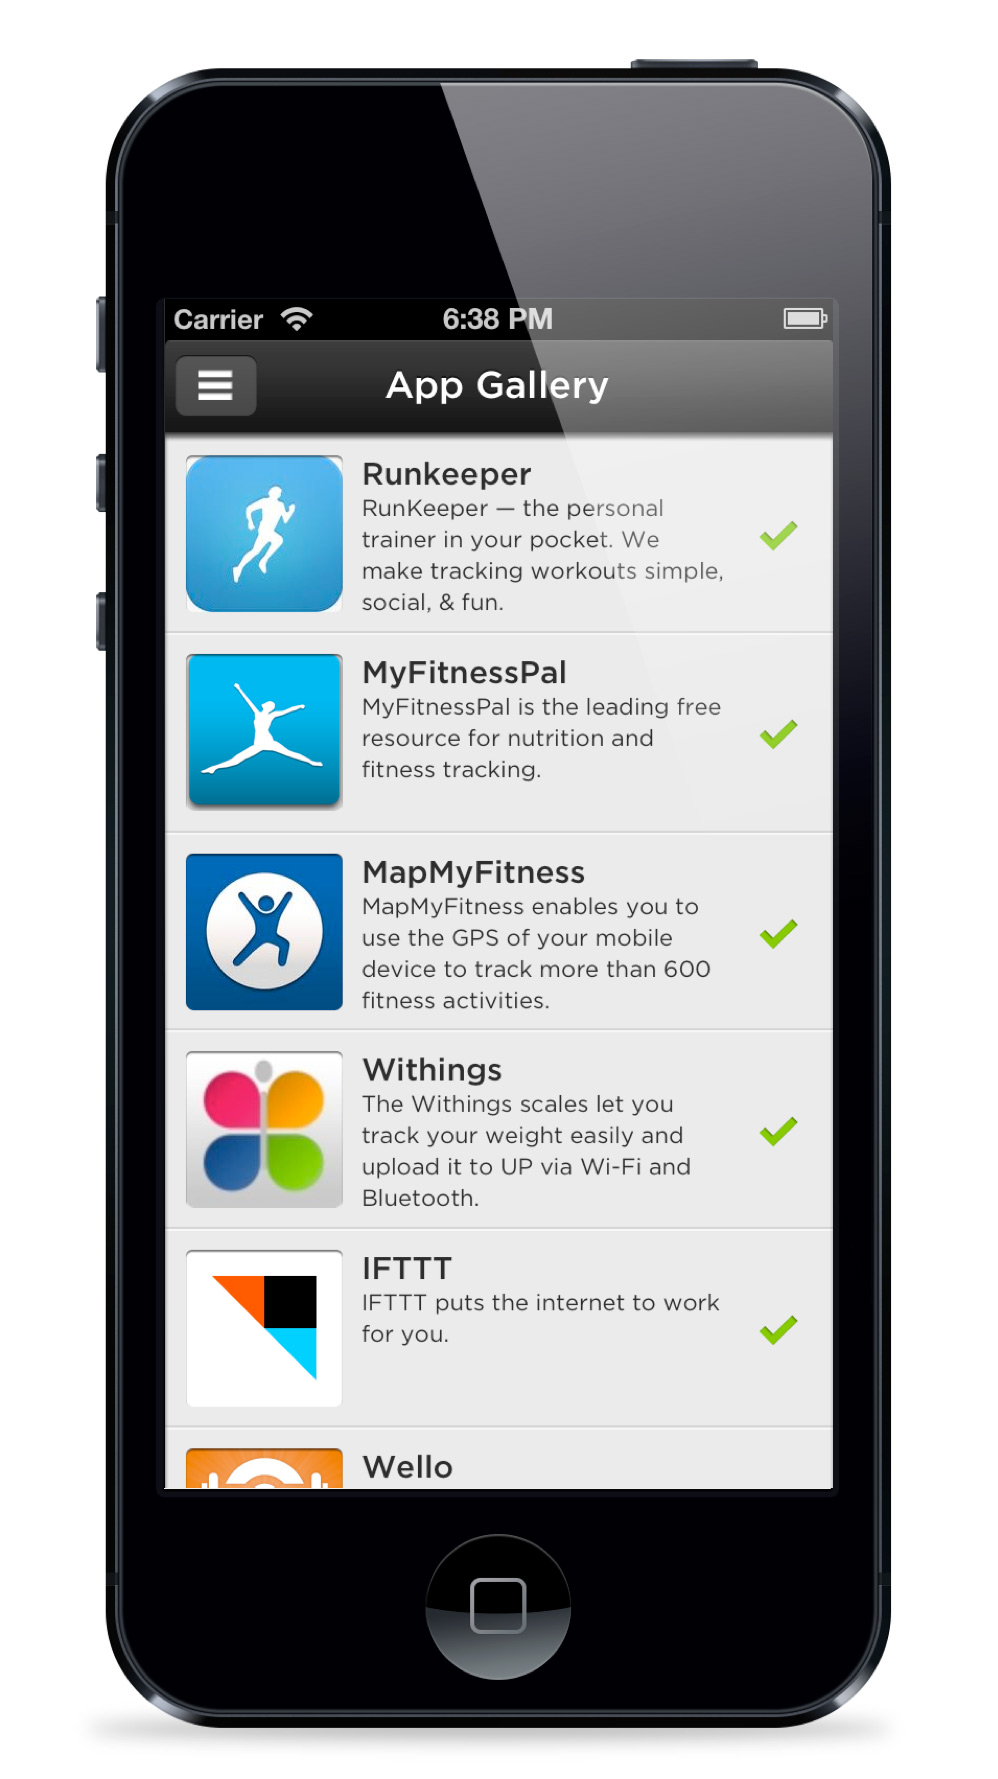 Jawbone Agrees To Acquire BodyMedia For $100M, Opens UP Platform For Developers